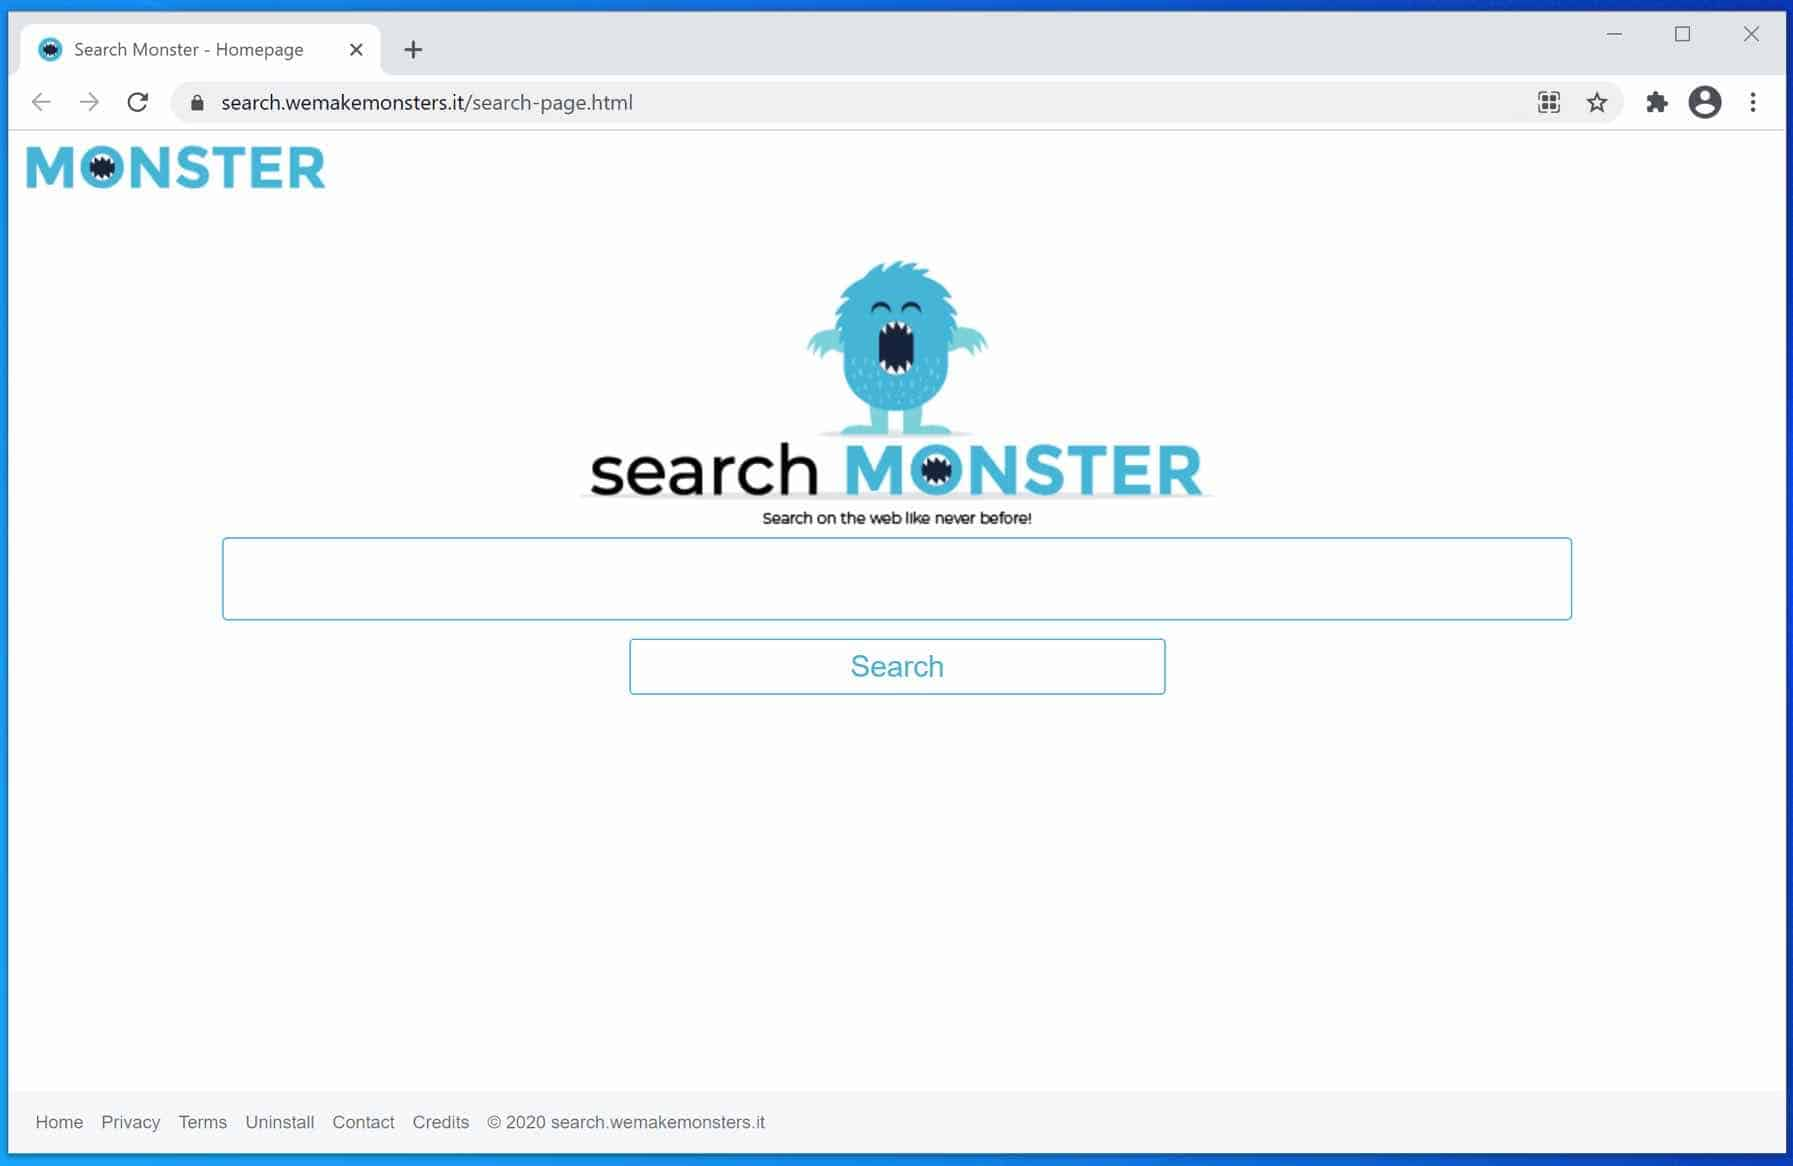 search.wemakemonsters.it